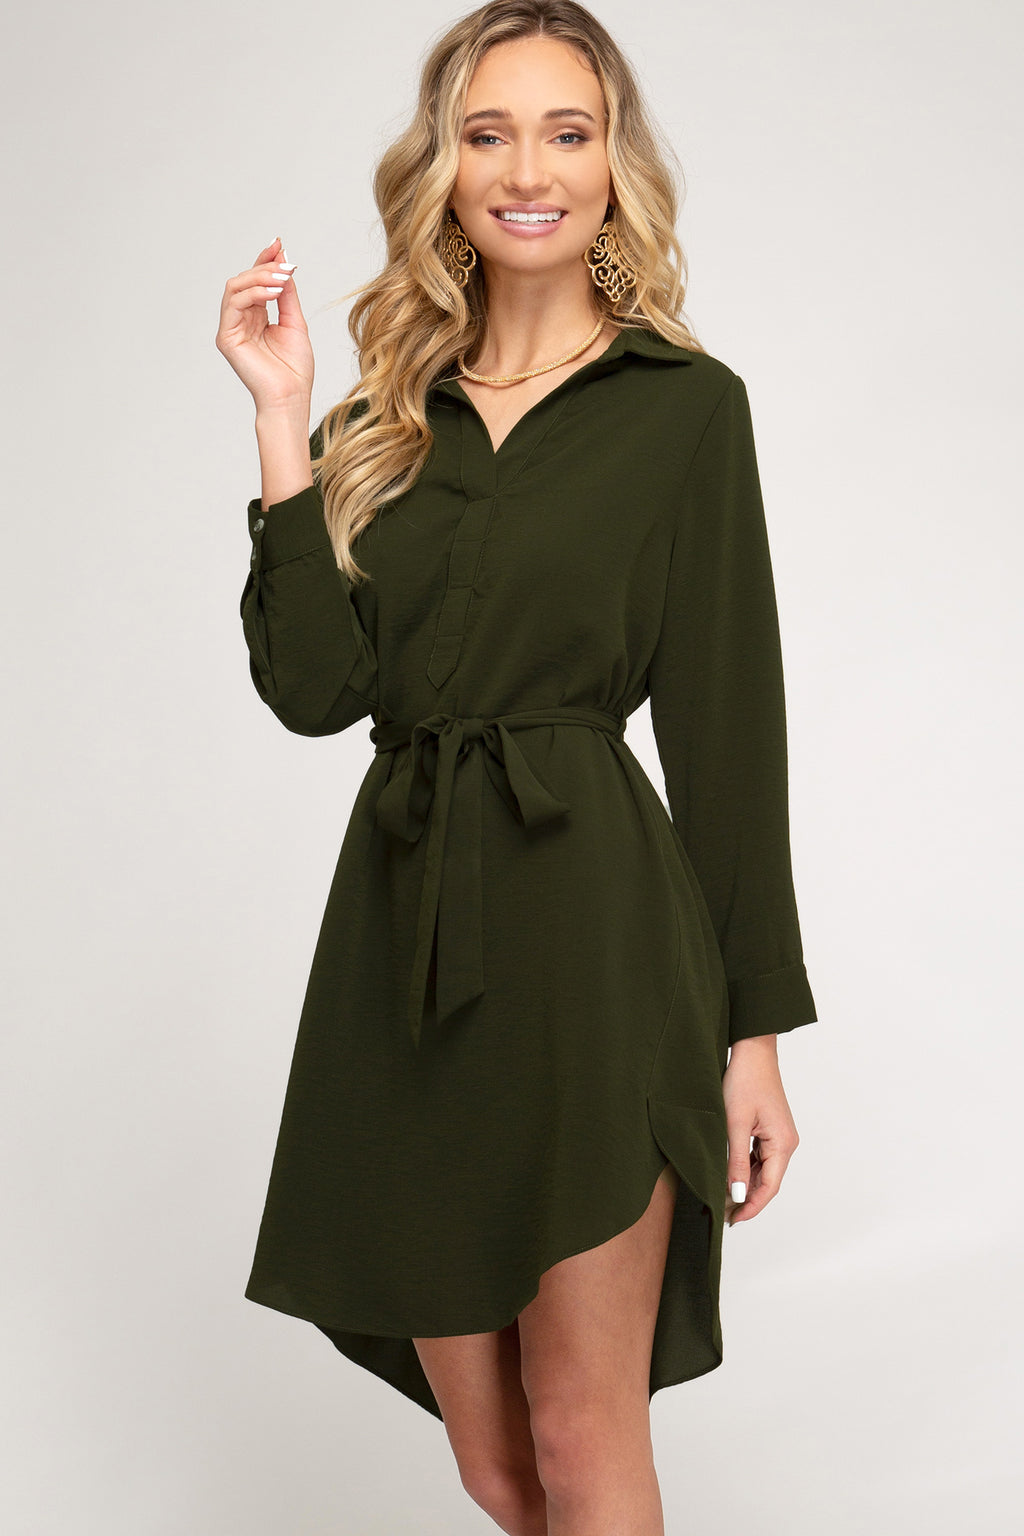 OLIVE SHIRT DRESS - Erin Edit Shop